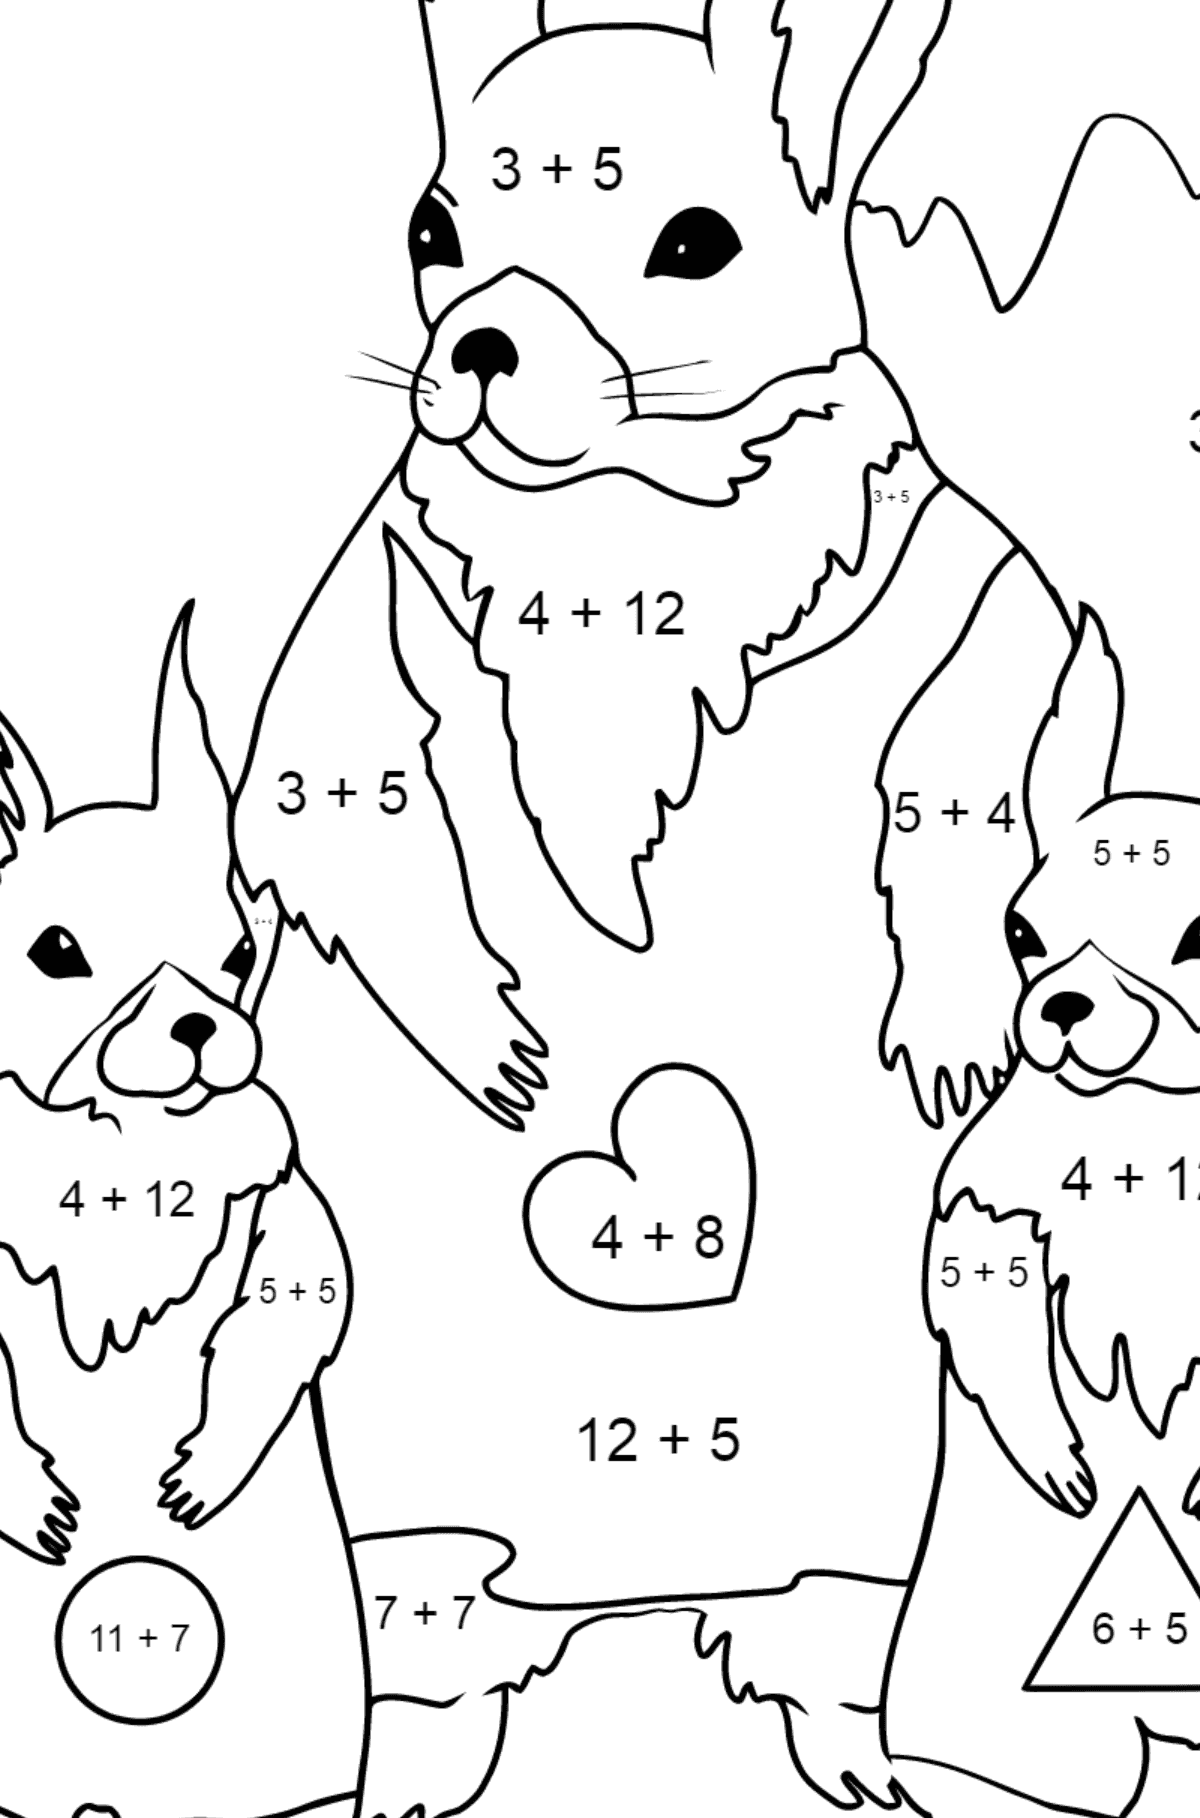 Spring Coloring Page - Beautiful Squirrels for Kids  - Color by Number Addition